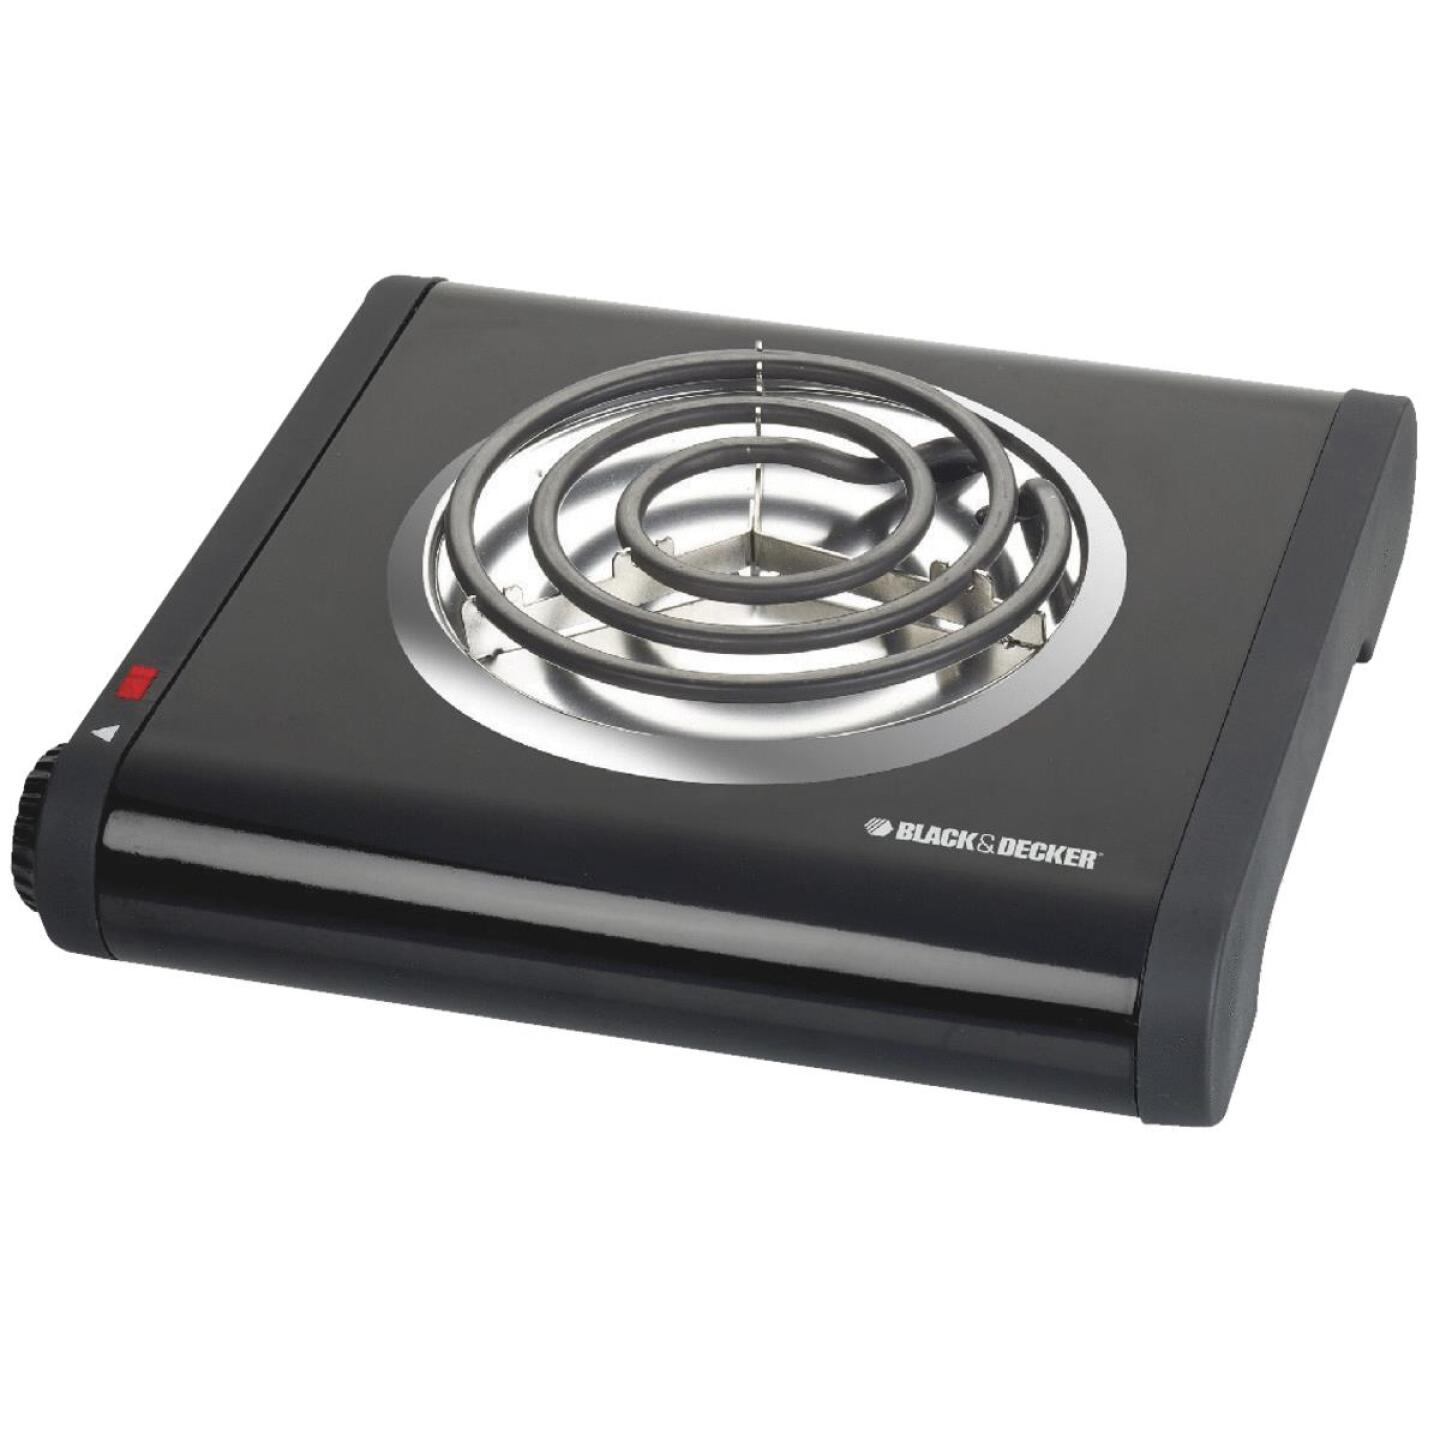 Black & Decker Single Coiled Burner Range Image 1